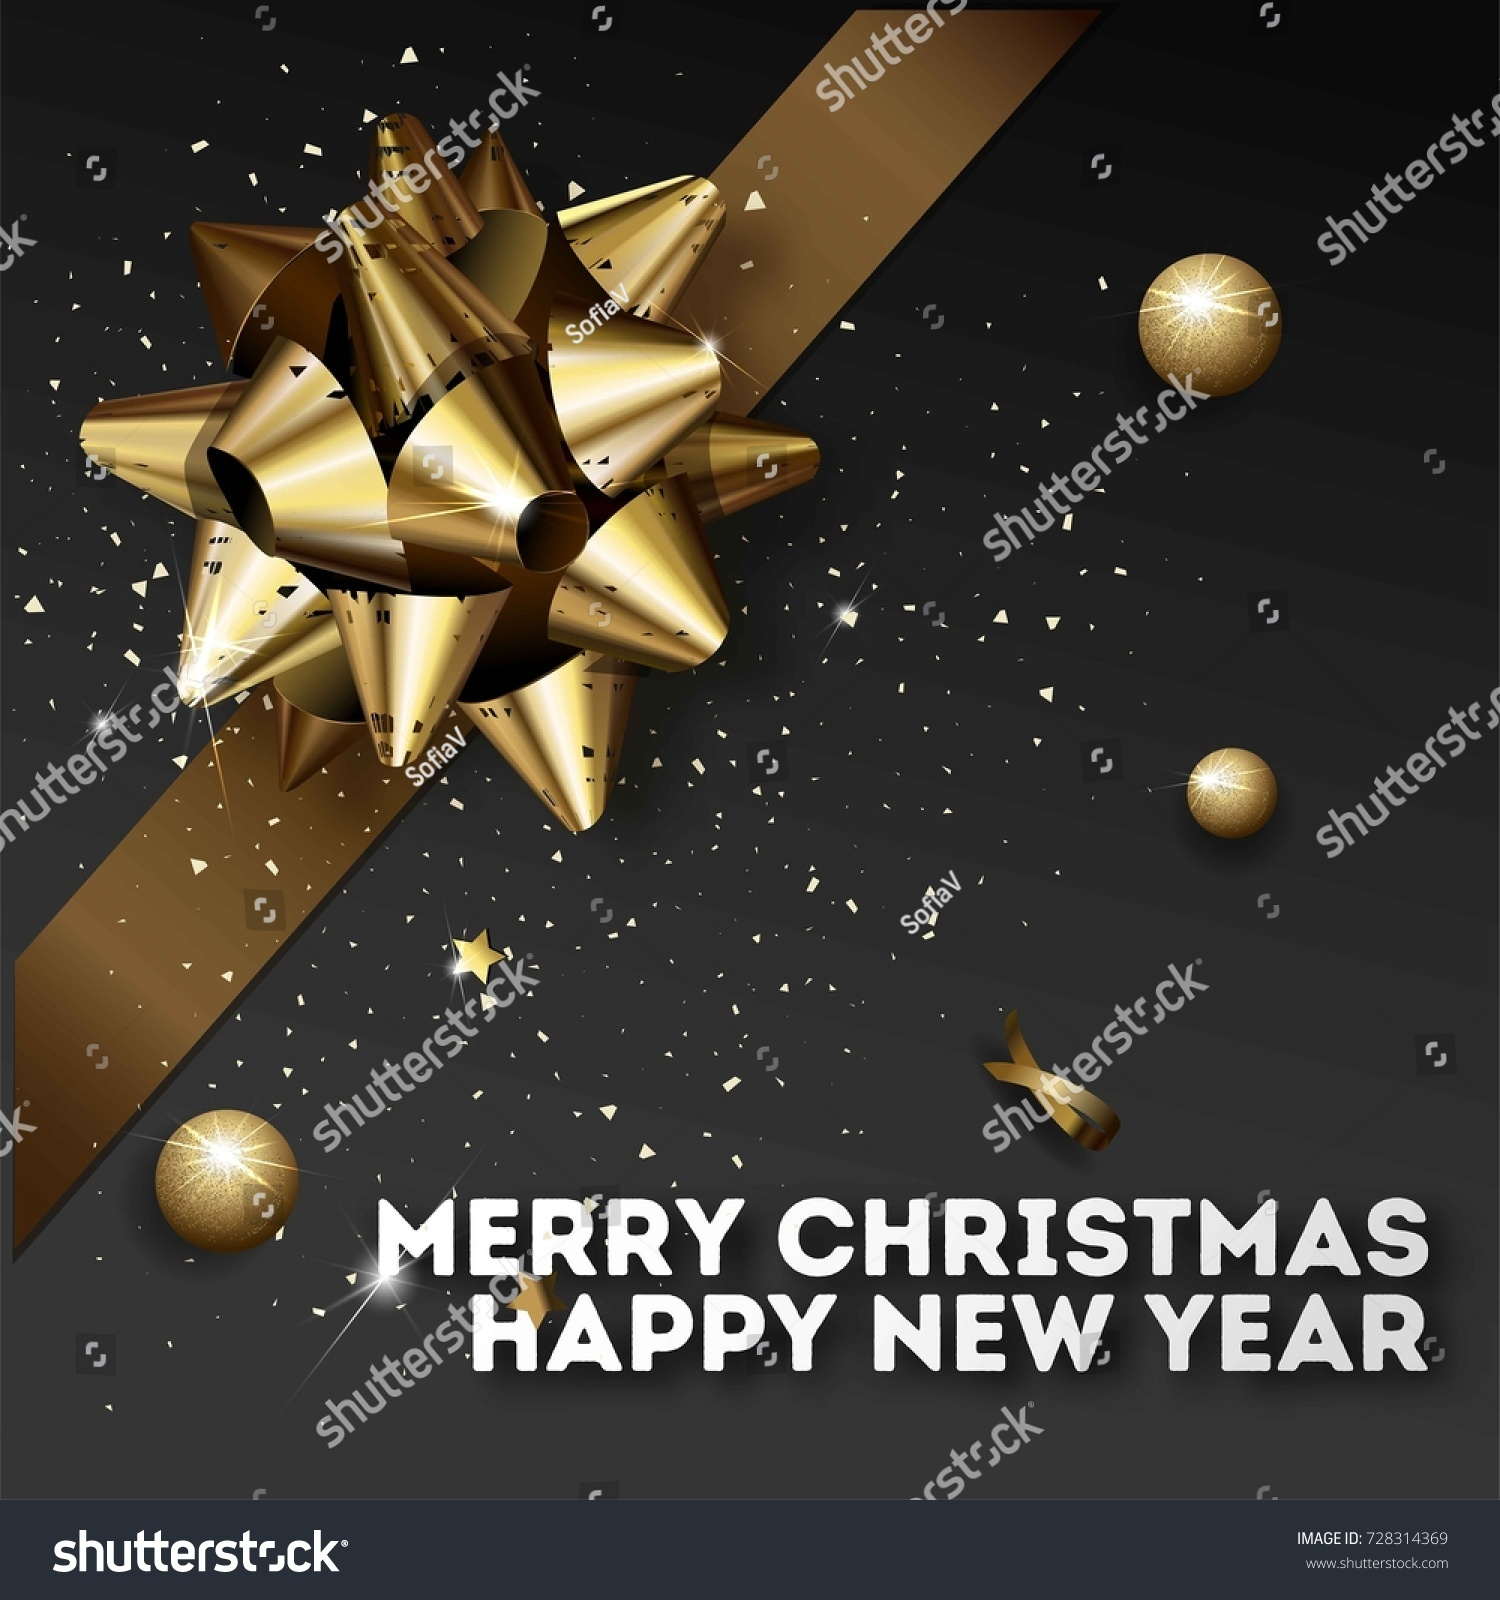 happy new year 2018 greeting card or poster template flyer or invitation design